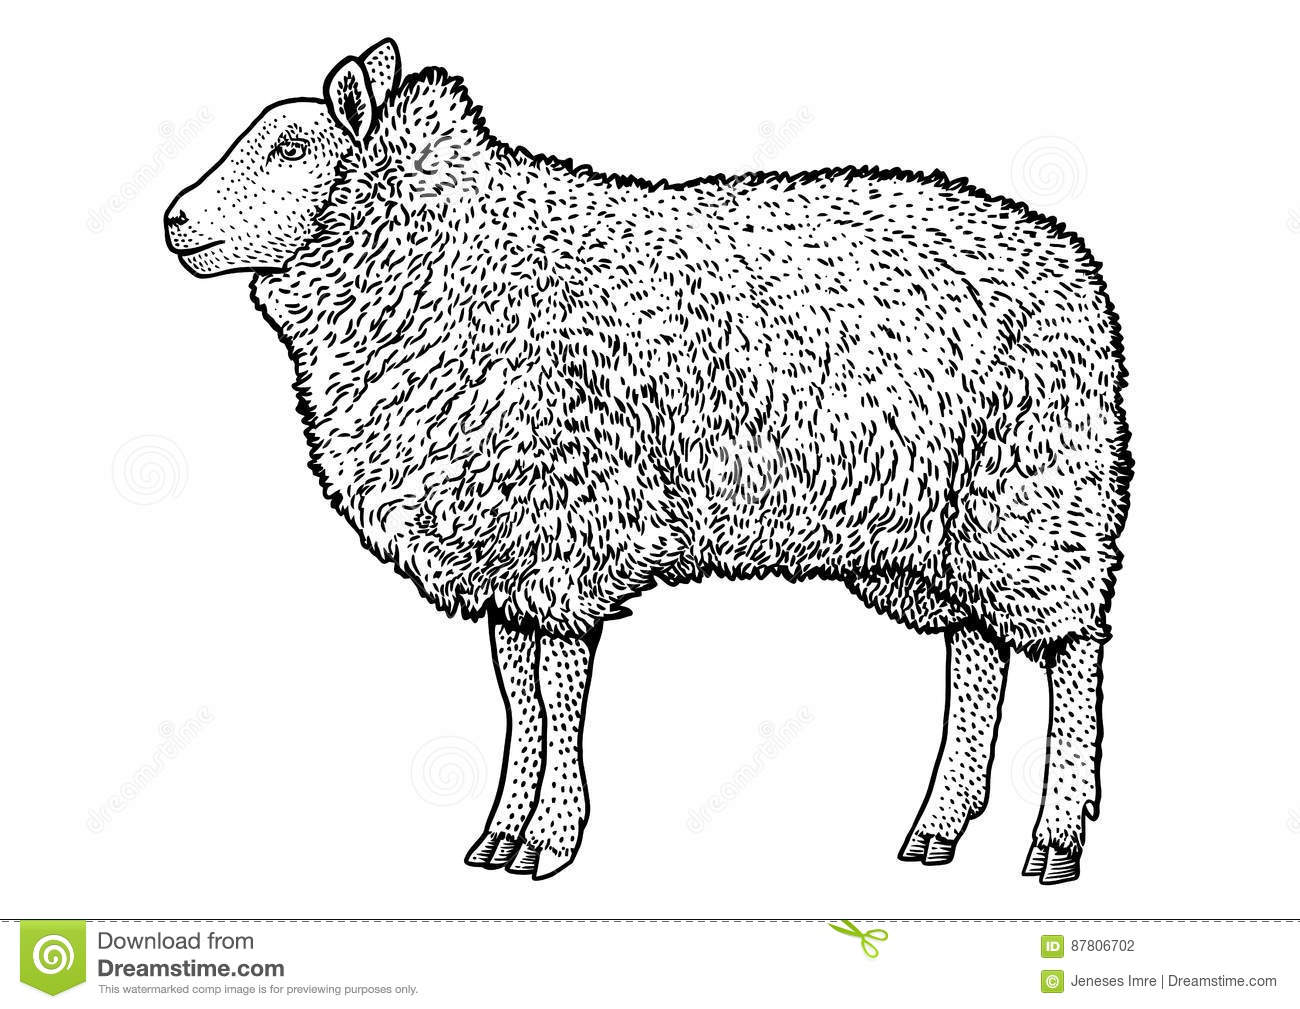 Line Drawing Images Of Sheep : Sheep illustration drawing engraving ink line art